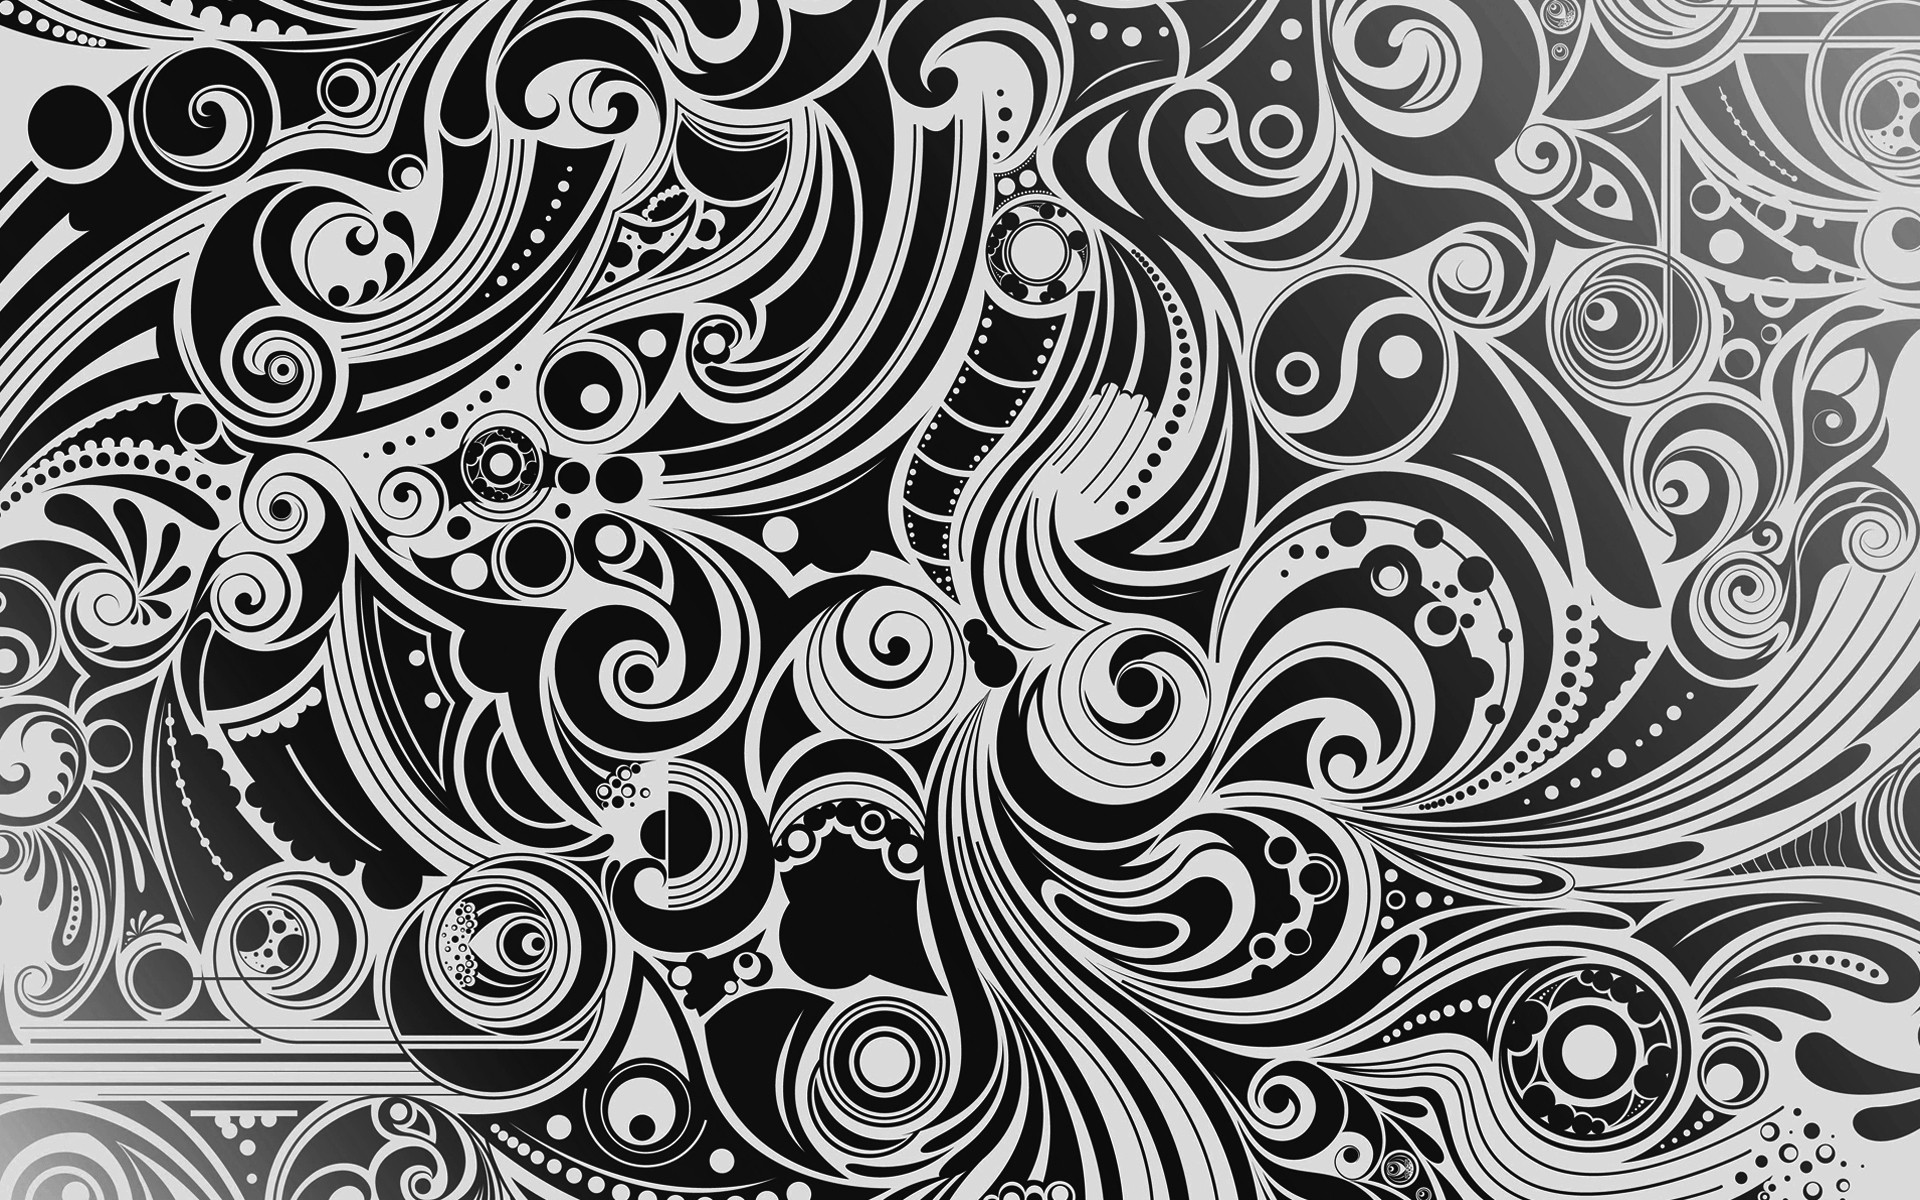 Abstract patterns monochrome wallpaper | 1920x1200 | 18452